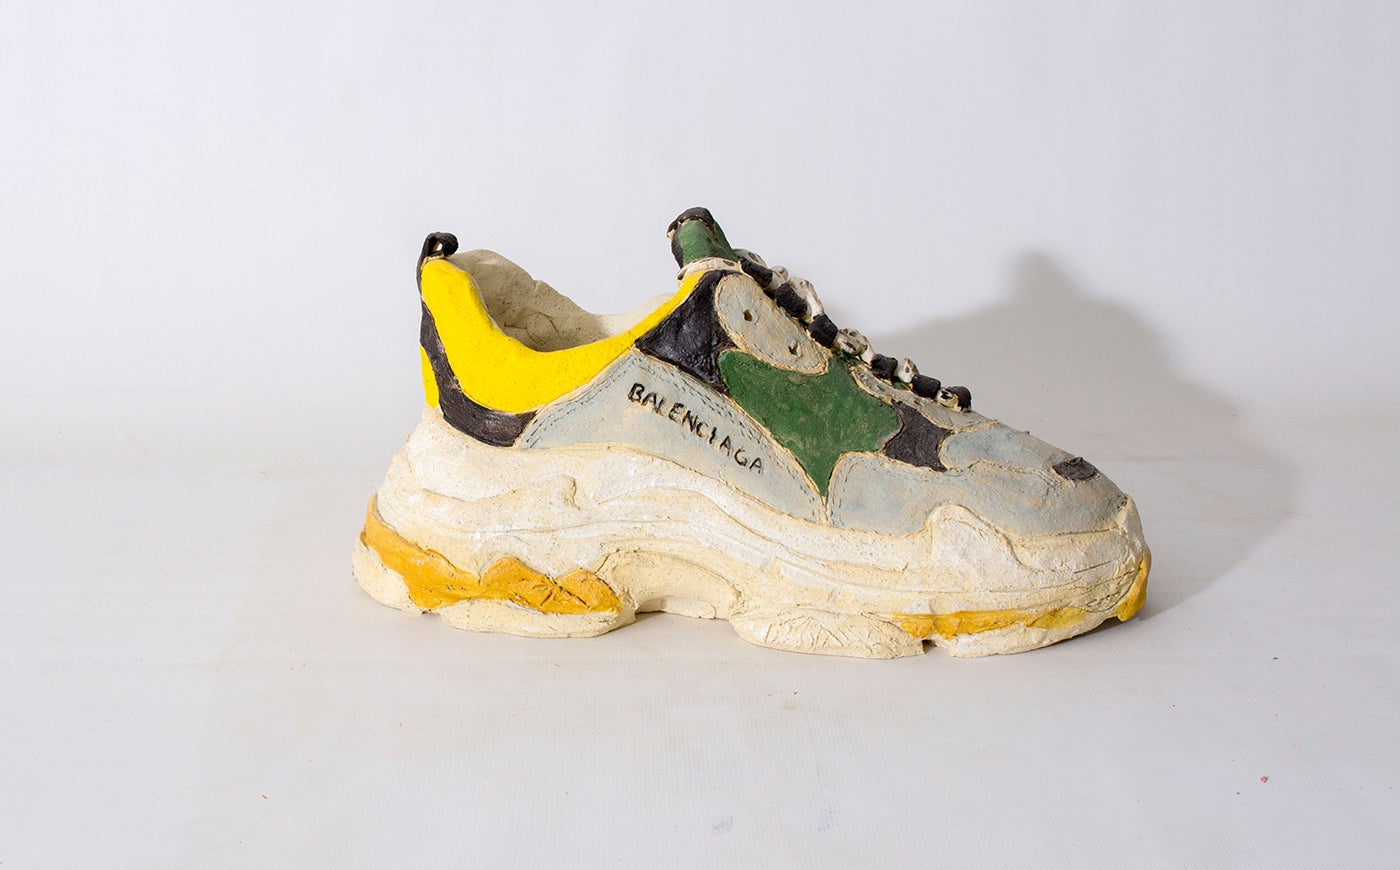 Diana 'Didi' Rojas talks to gestalten about her ceramic shoes